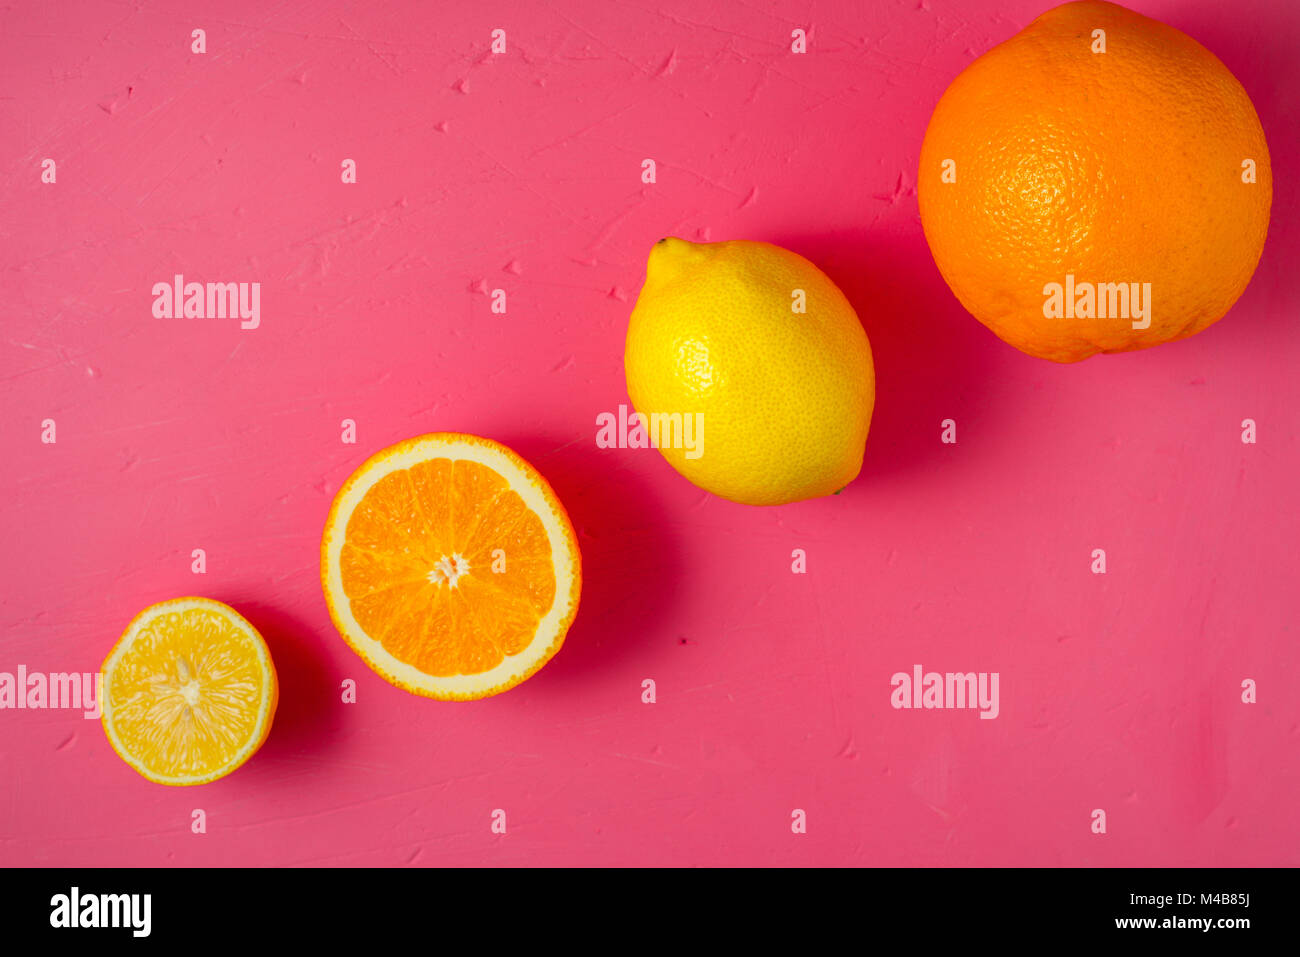 Lemons and oranges on the bright pink background top view - Stock Image